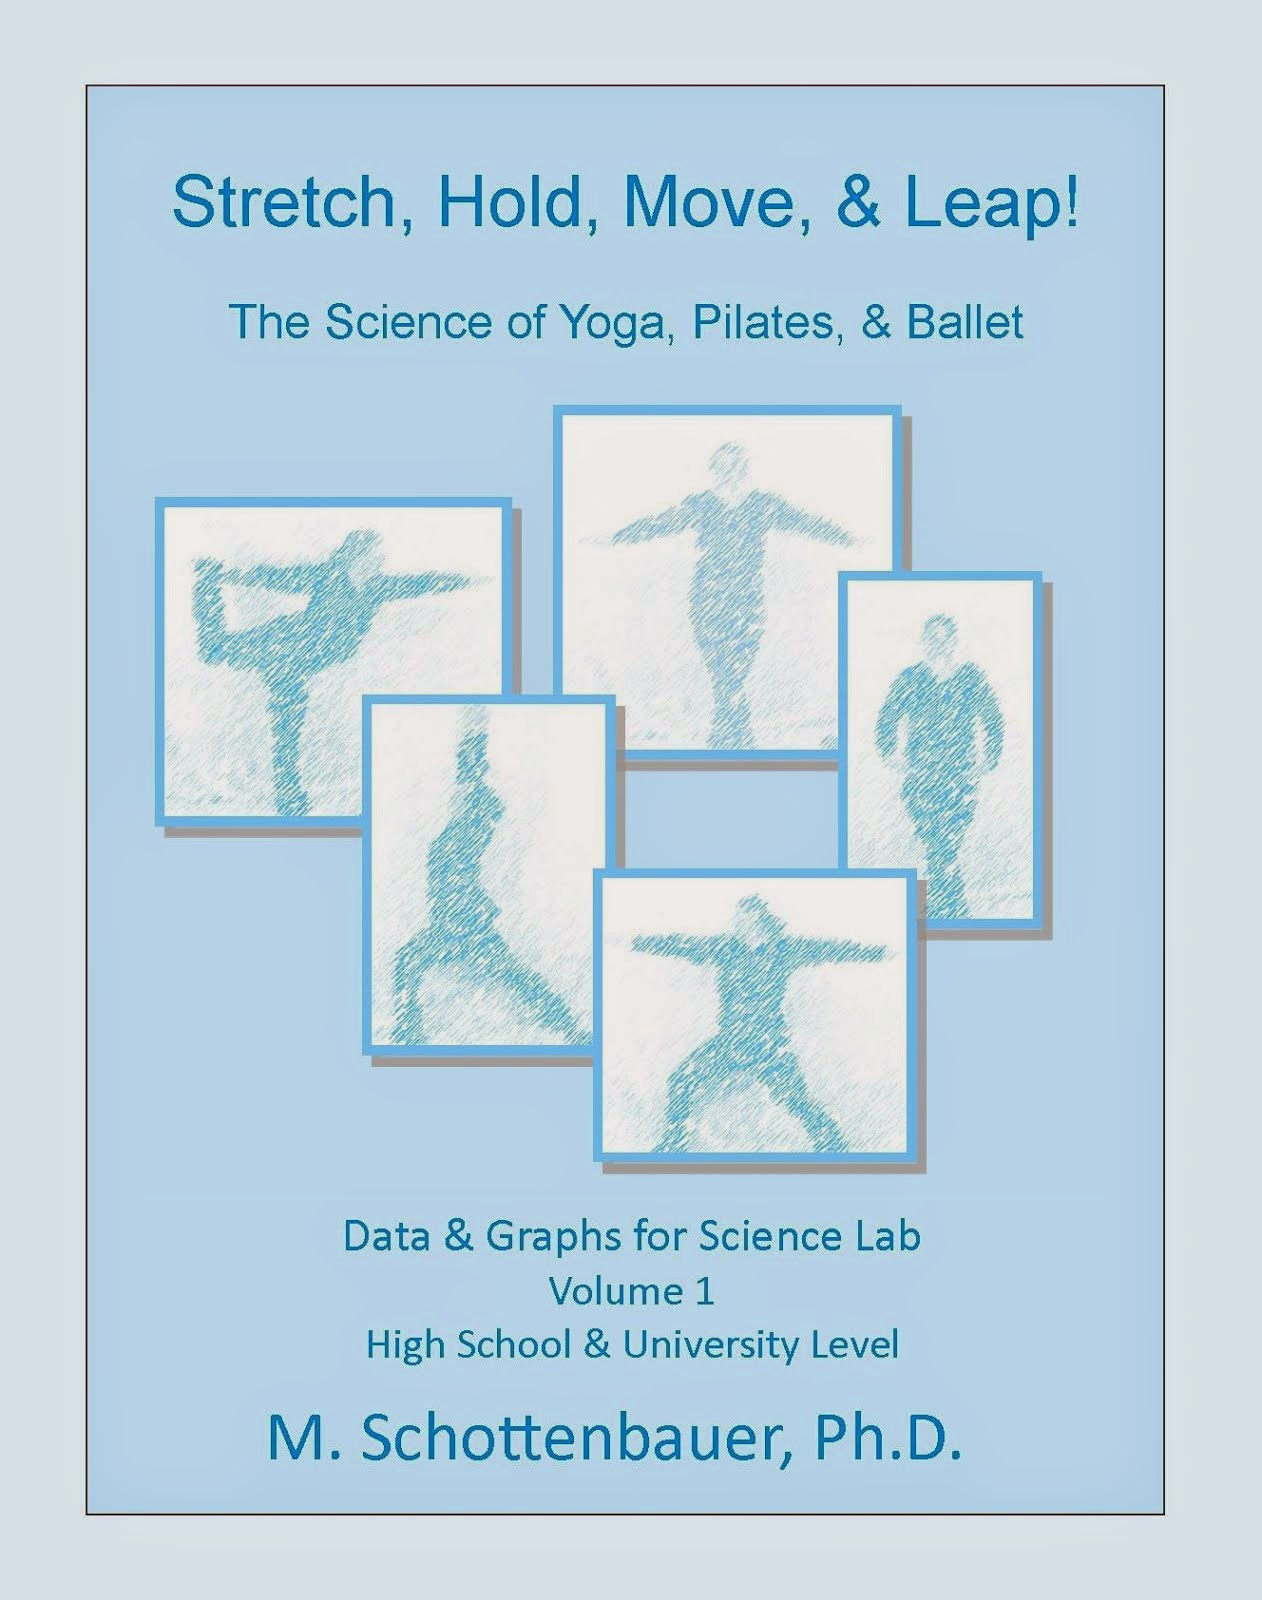 Science of Yoga, Pilates, & Ballet